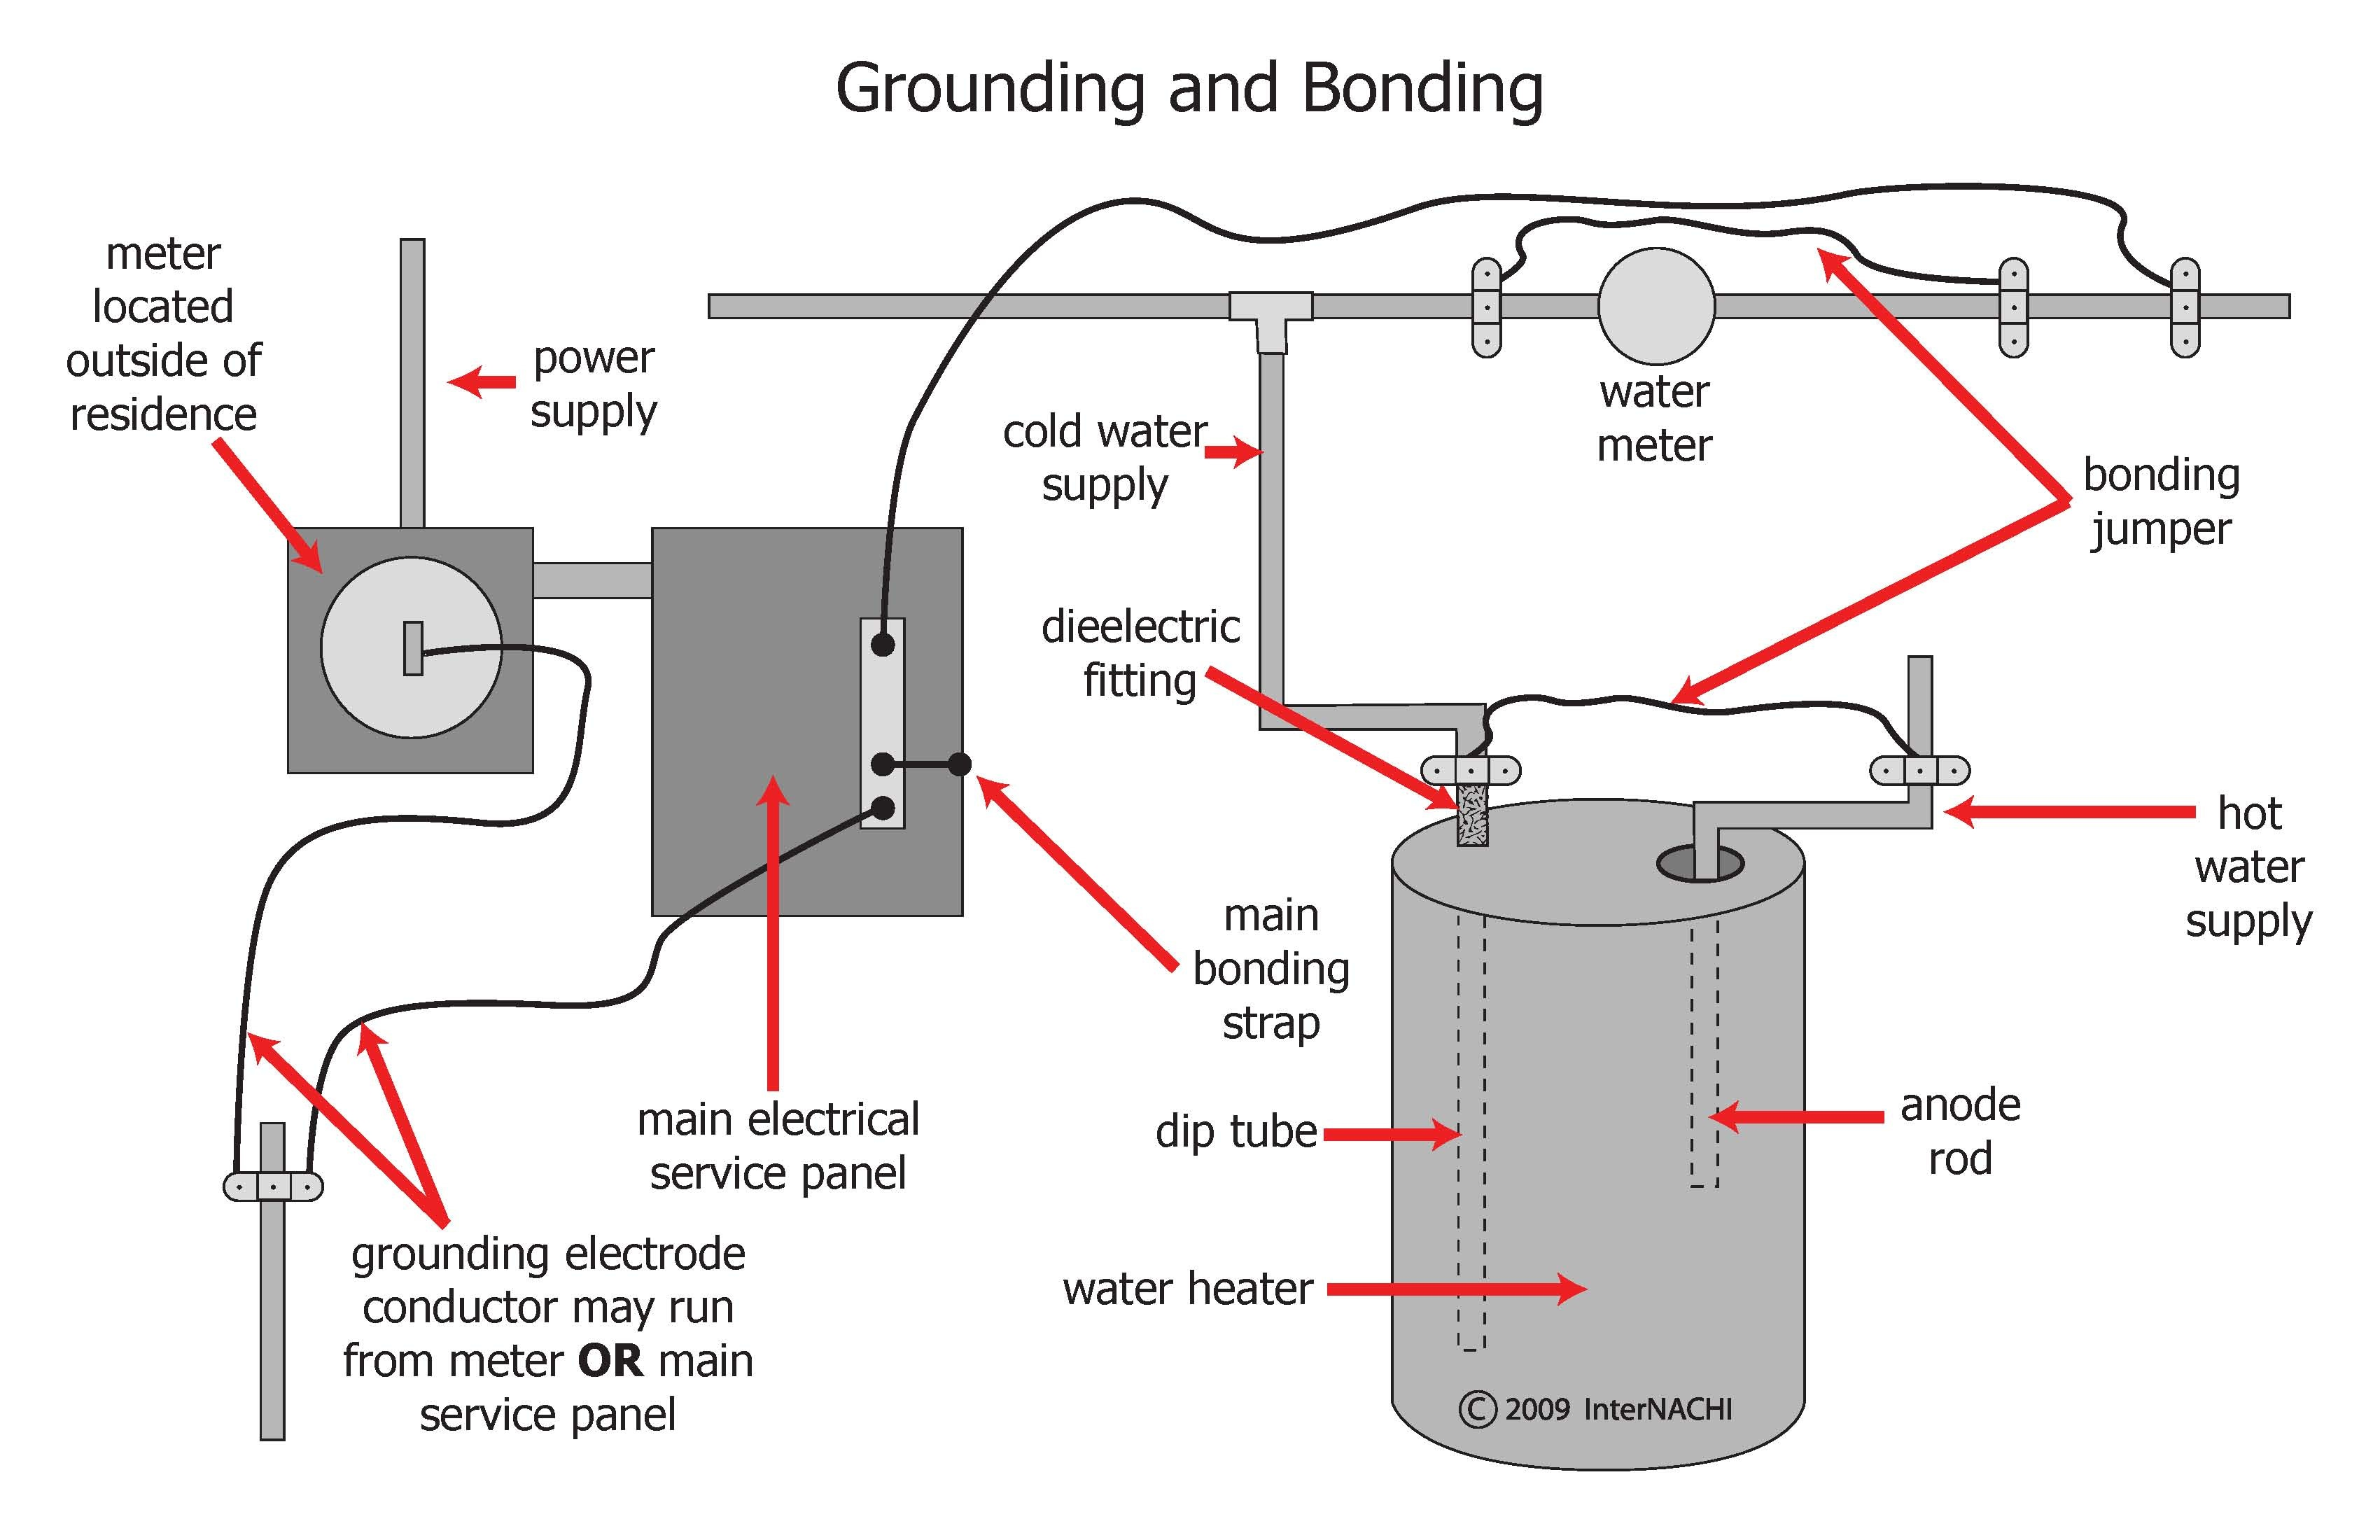 Should A Neutral Wire Ever Be Connected To The Neutral For The Power Meter likewise Power Distribution In Industries in addition 1676 in addition Watch as well Note151. on electrical panel grounding diagram